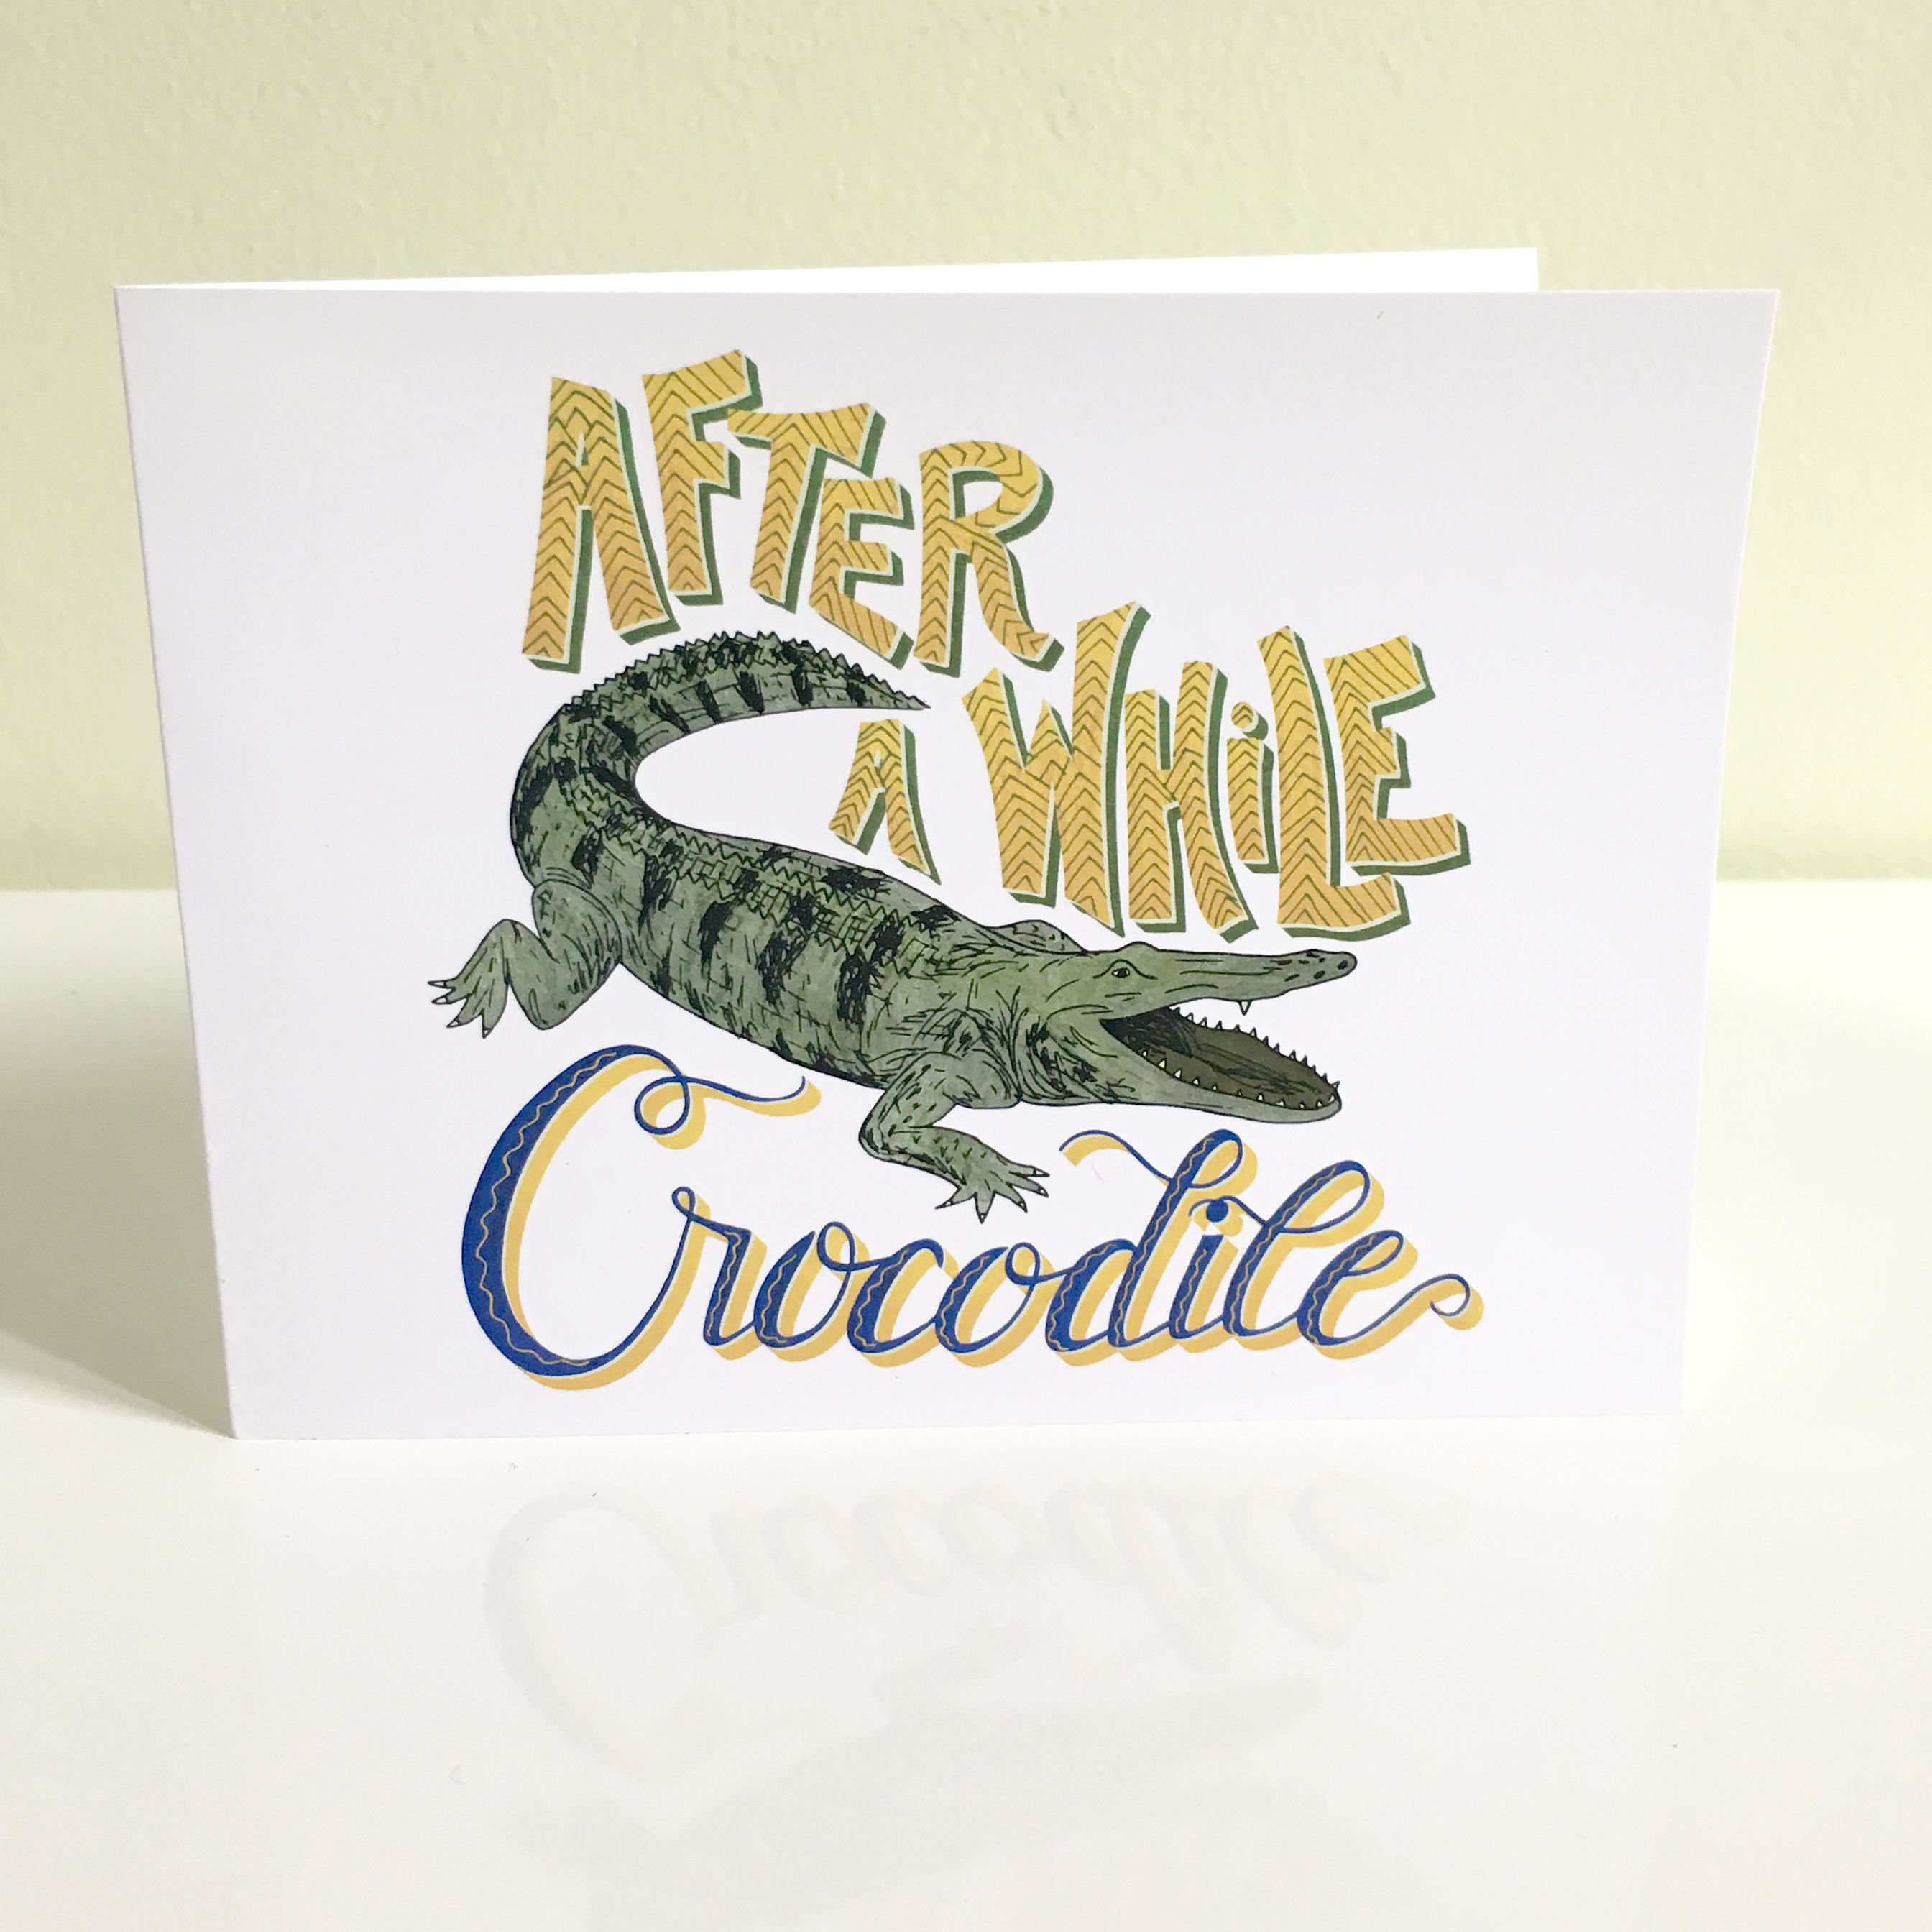 Goodbye card after a while crocodile greeting card going away goodbye card after a while crocodile greeting card going away card leaving kristyandbryce Gallery